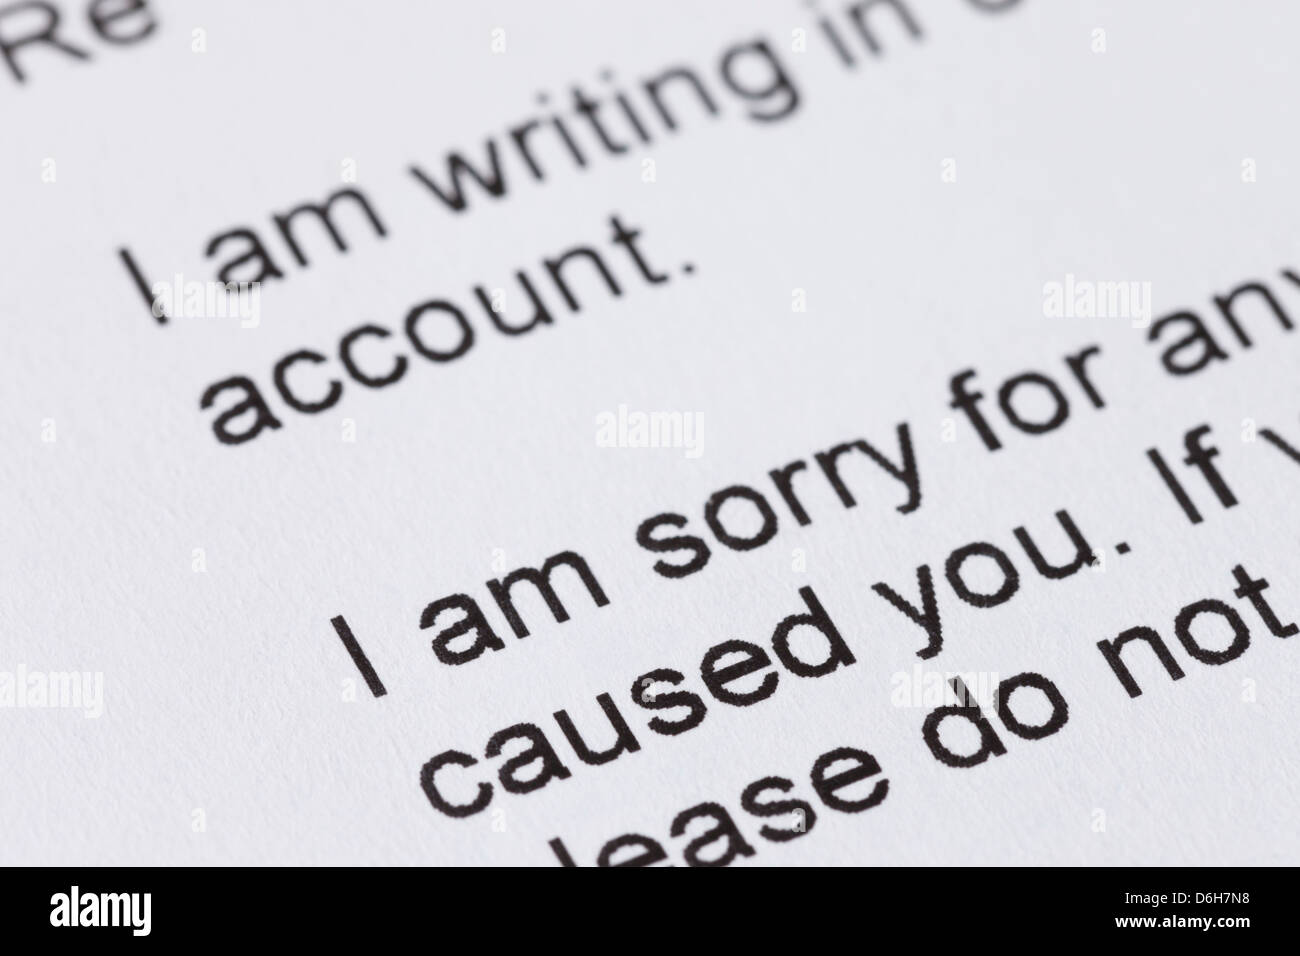 apology letter to an account holder from a company involved in stock